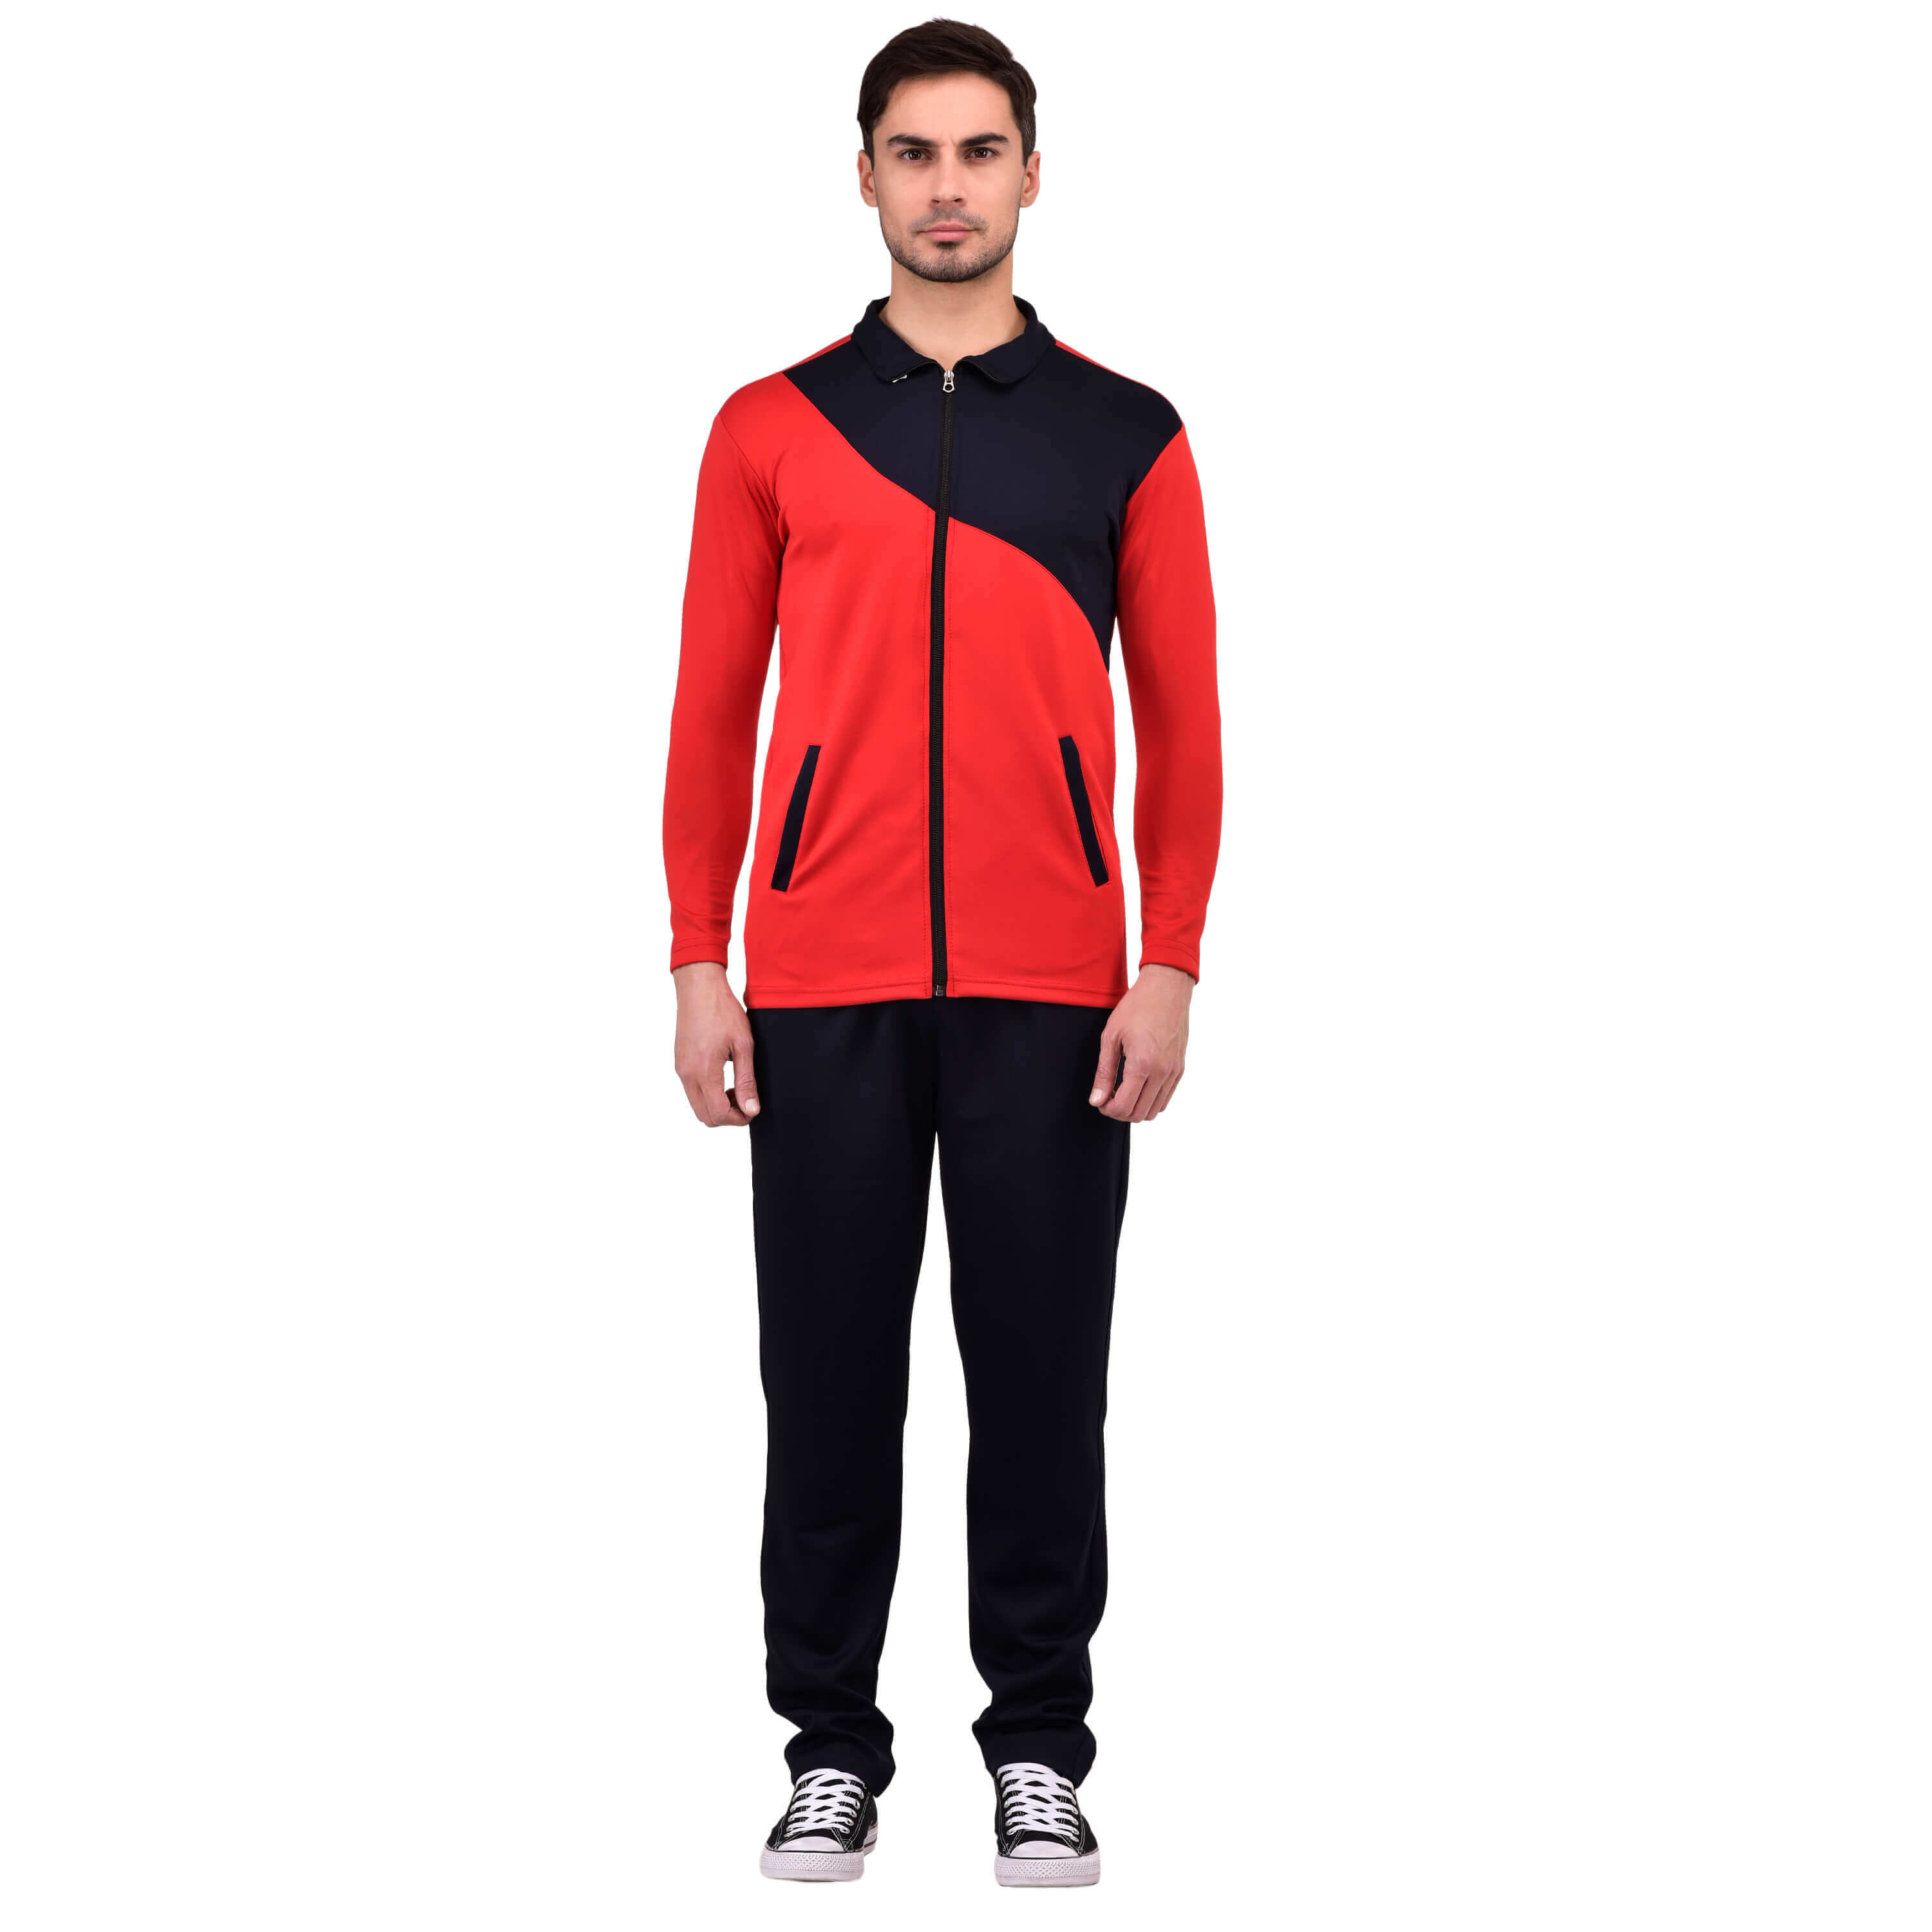 Mens Jogging Suits